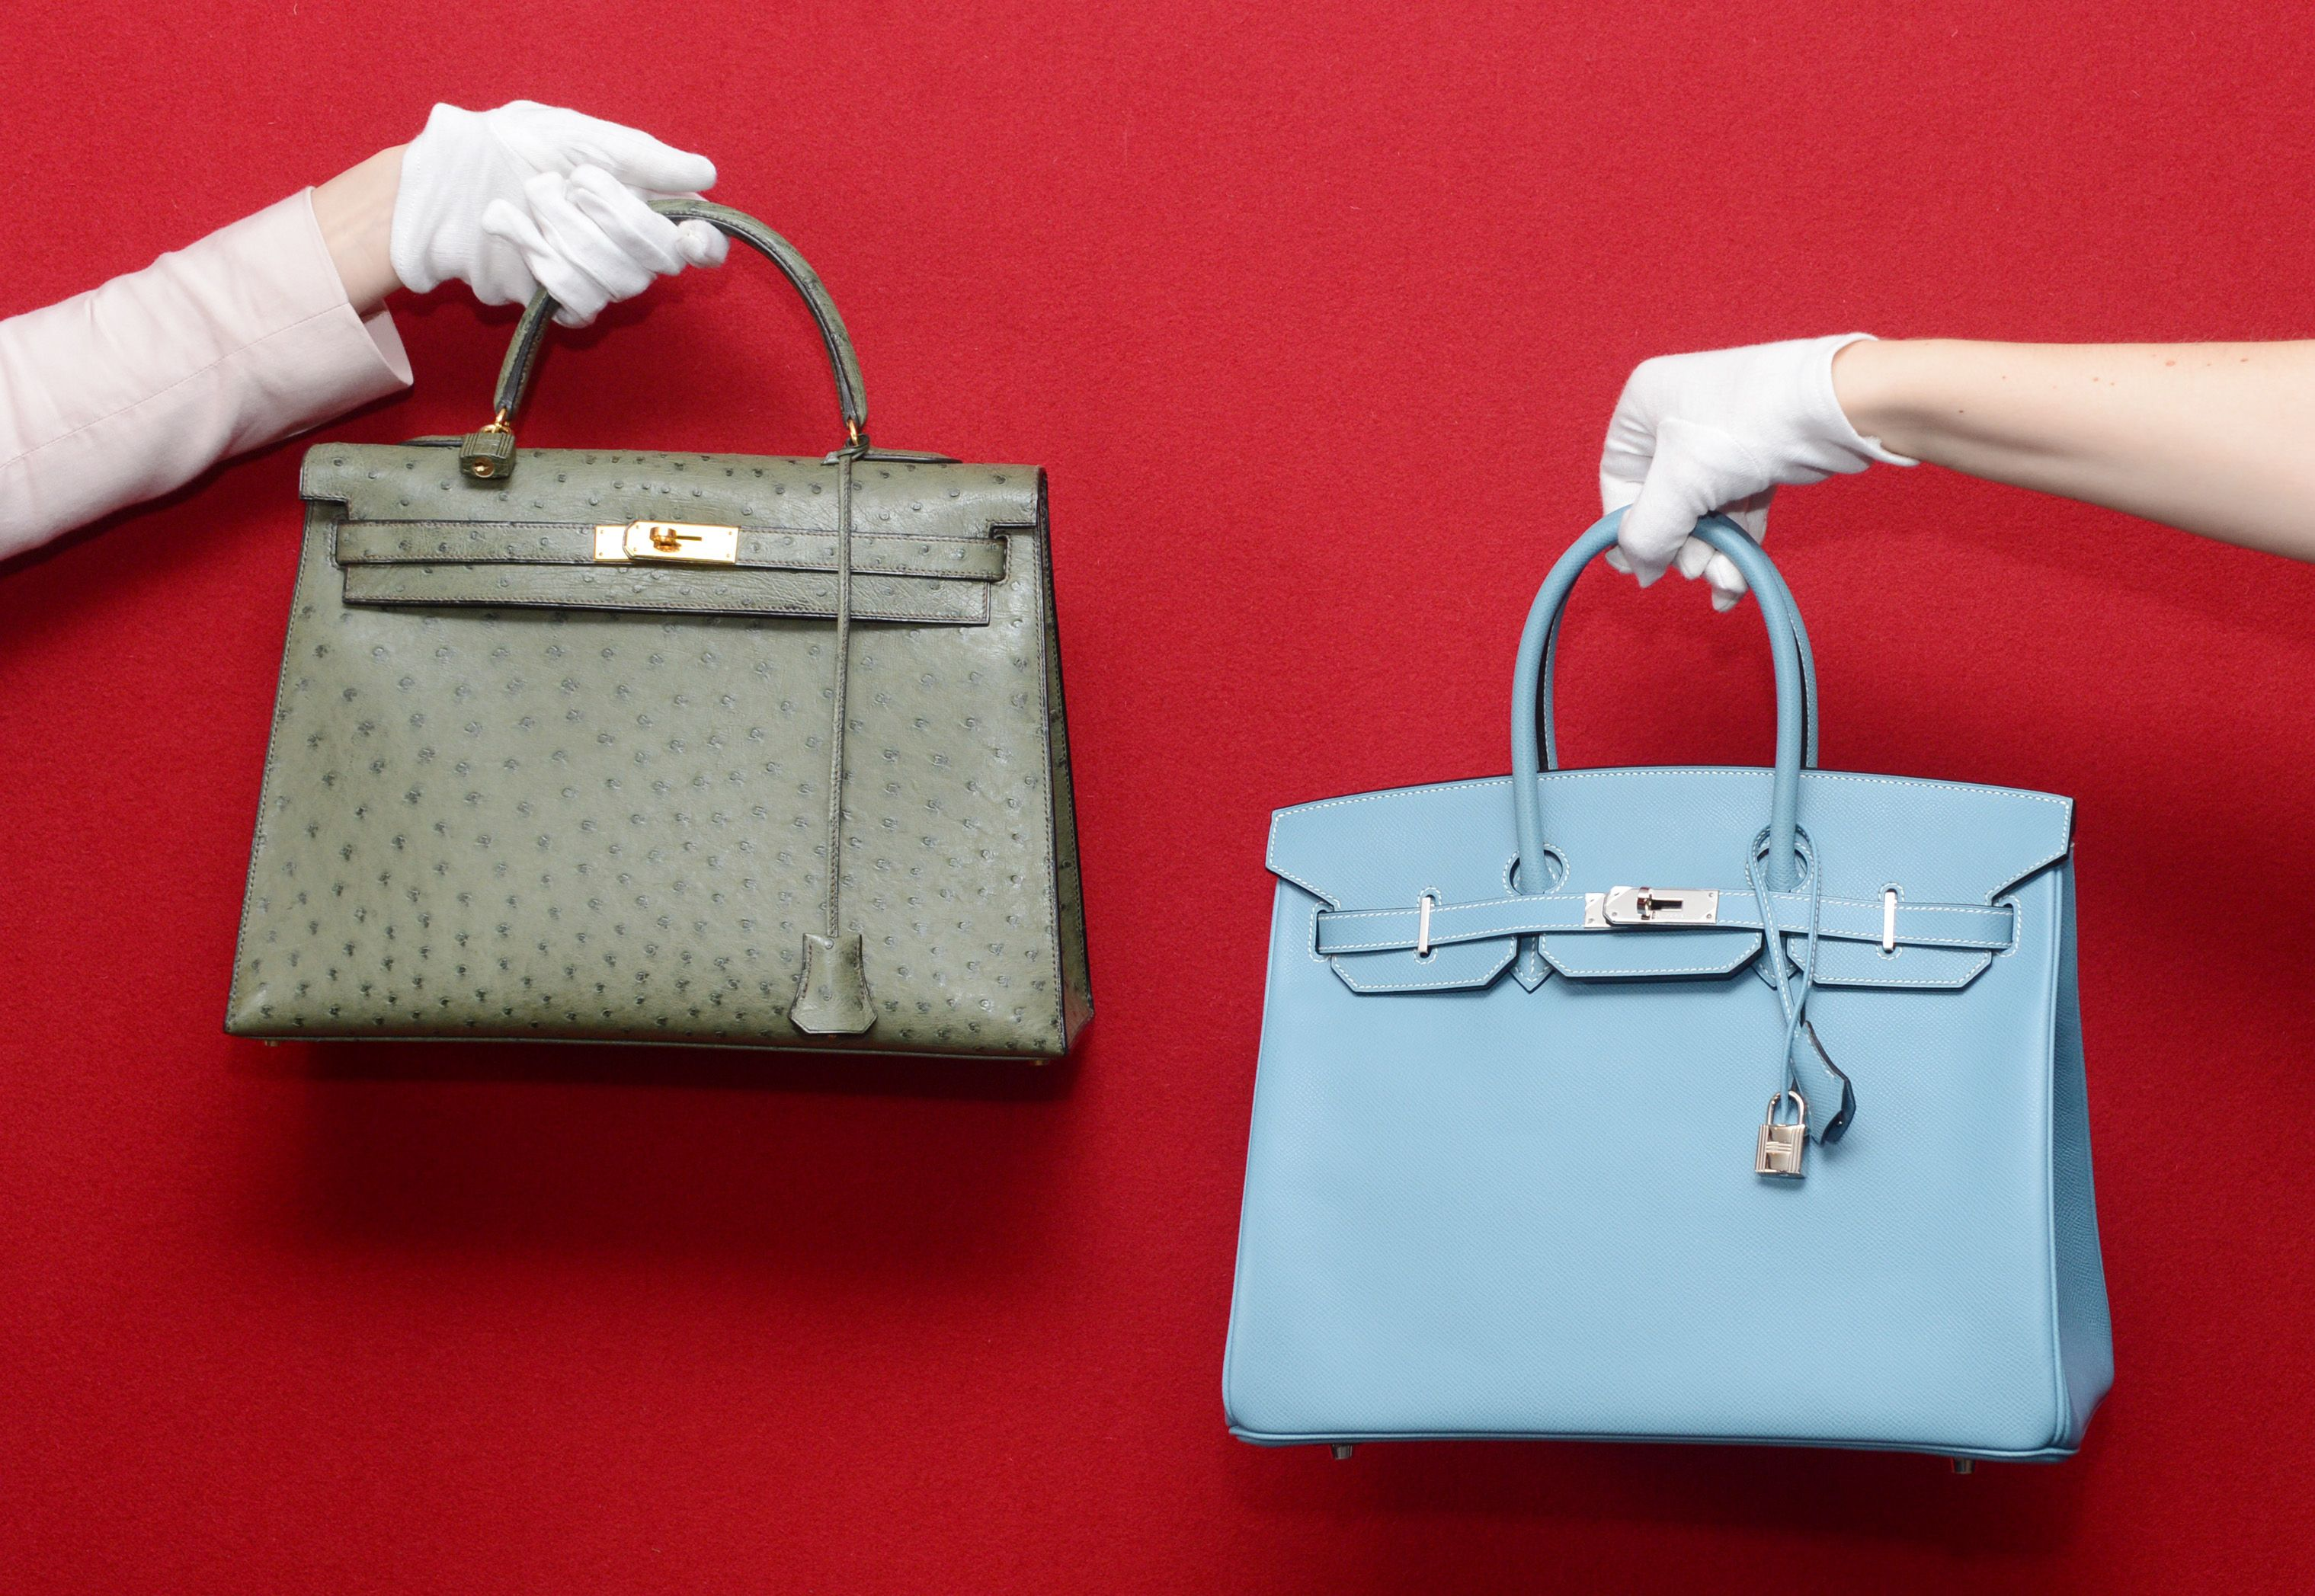 f44acfb314a2 11 Things You Didn t Know About Hermes Birkins - Hermes Birkin ...